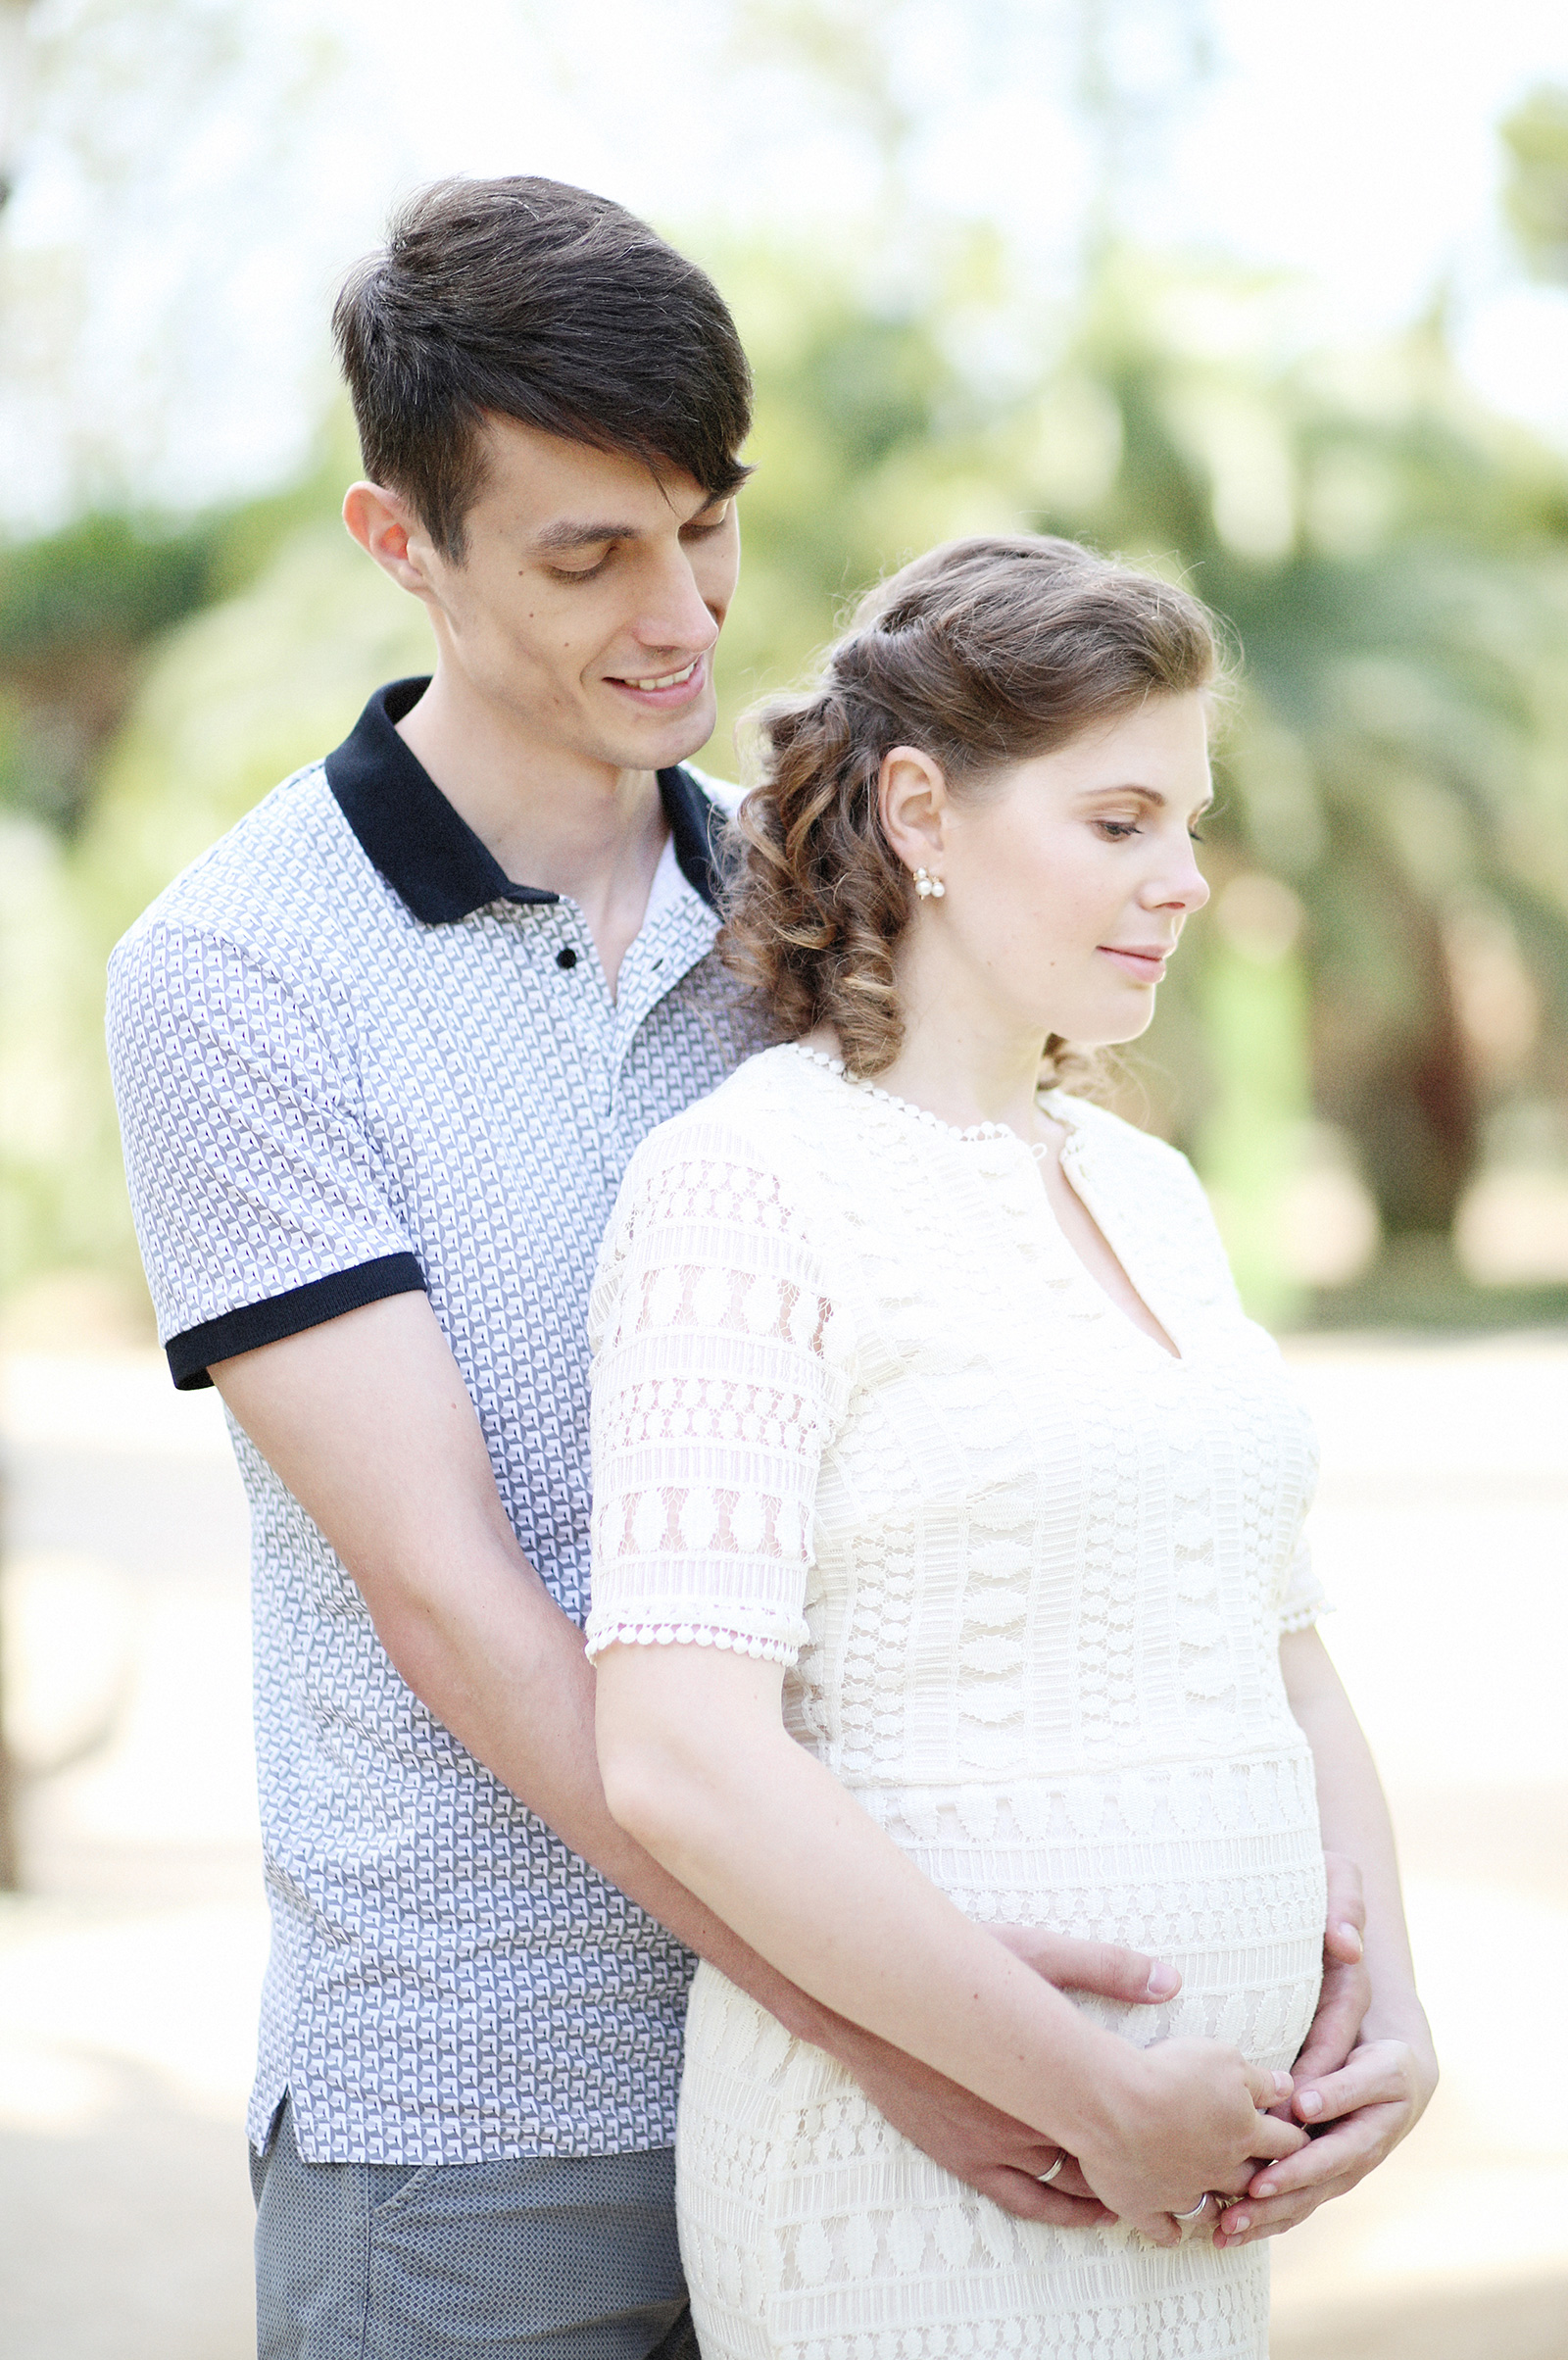 Maternity photo session in Barcelona